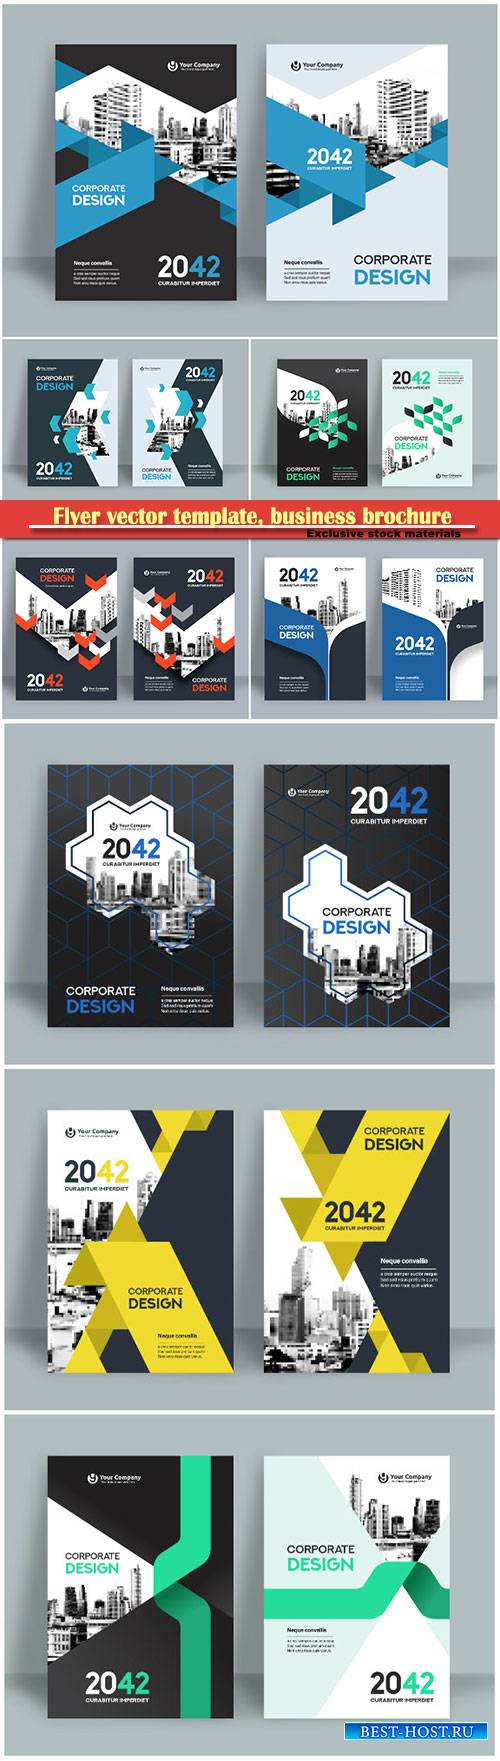 Flyer vector template, business brochure, magazine cover # 10